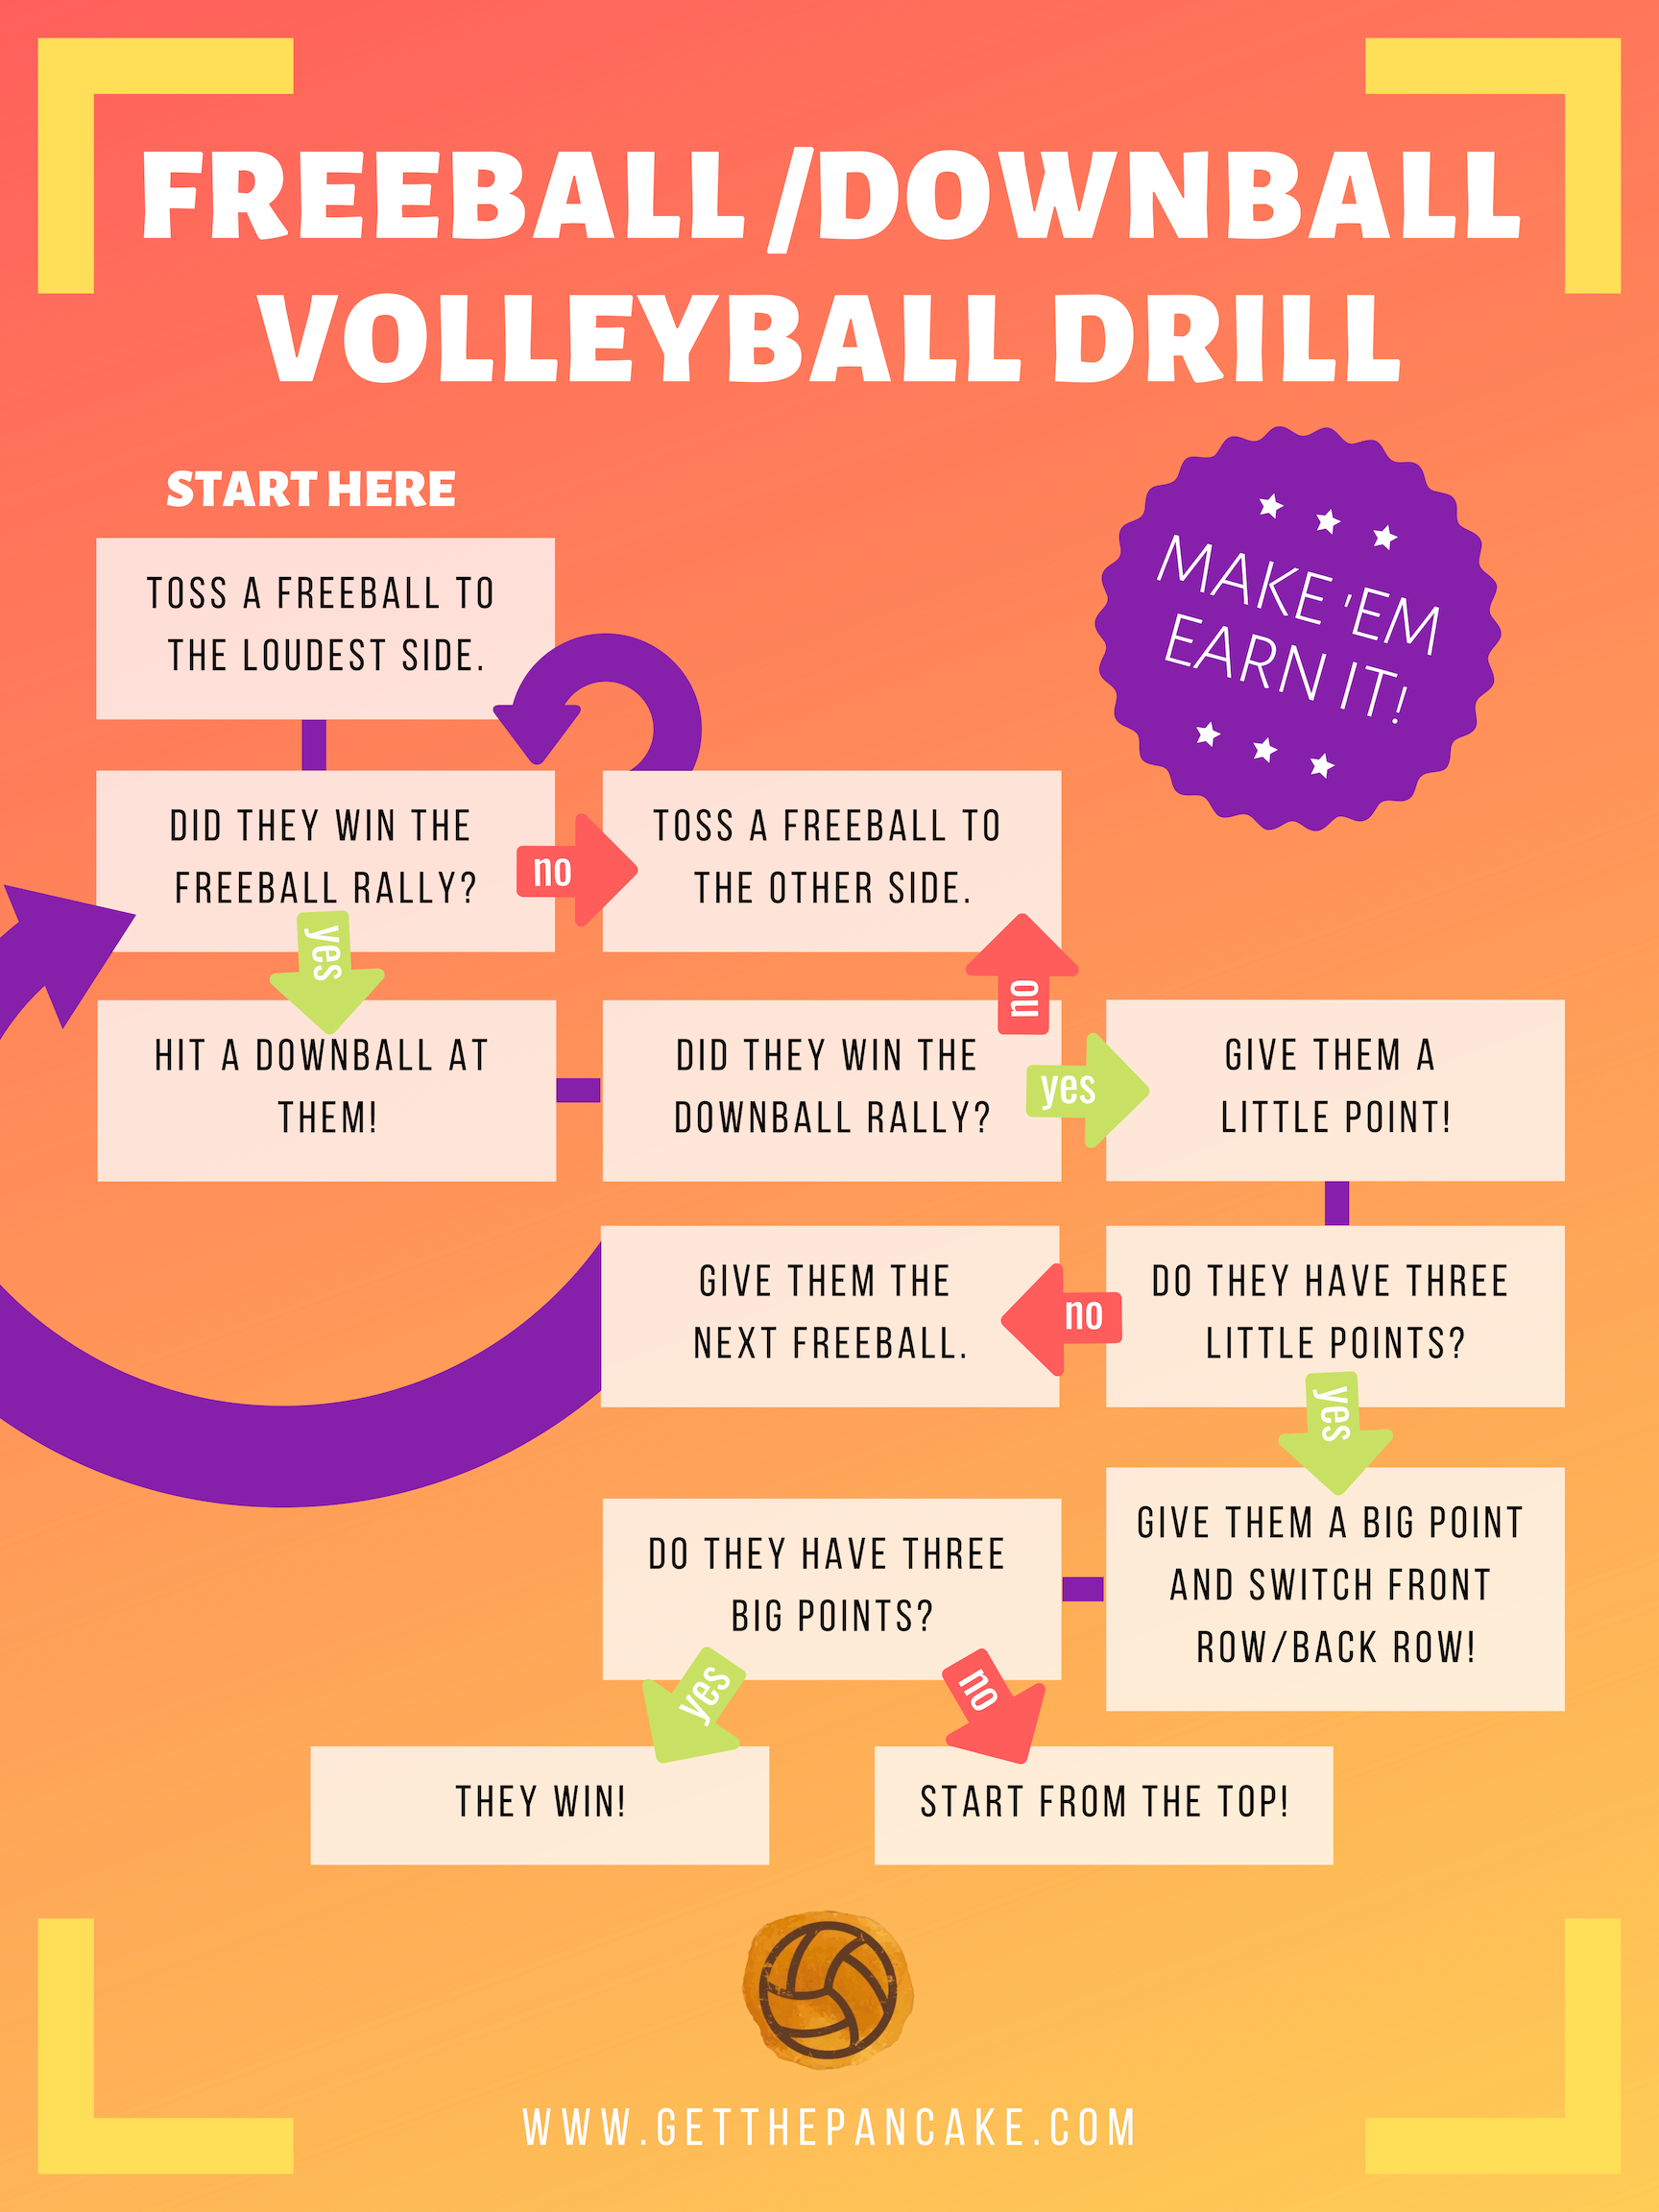 Freeball Downball Drill A Fast Paced Scrimmage Alternative To End Practice Volleyball Practice Coaching Volleyball Volleyball Drills